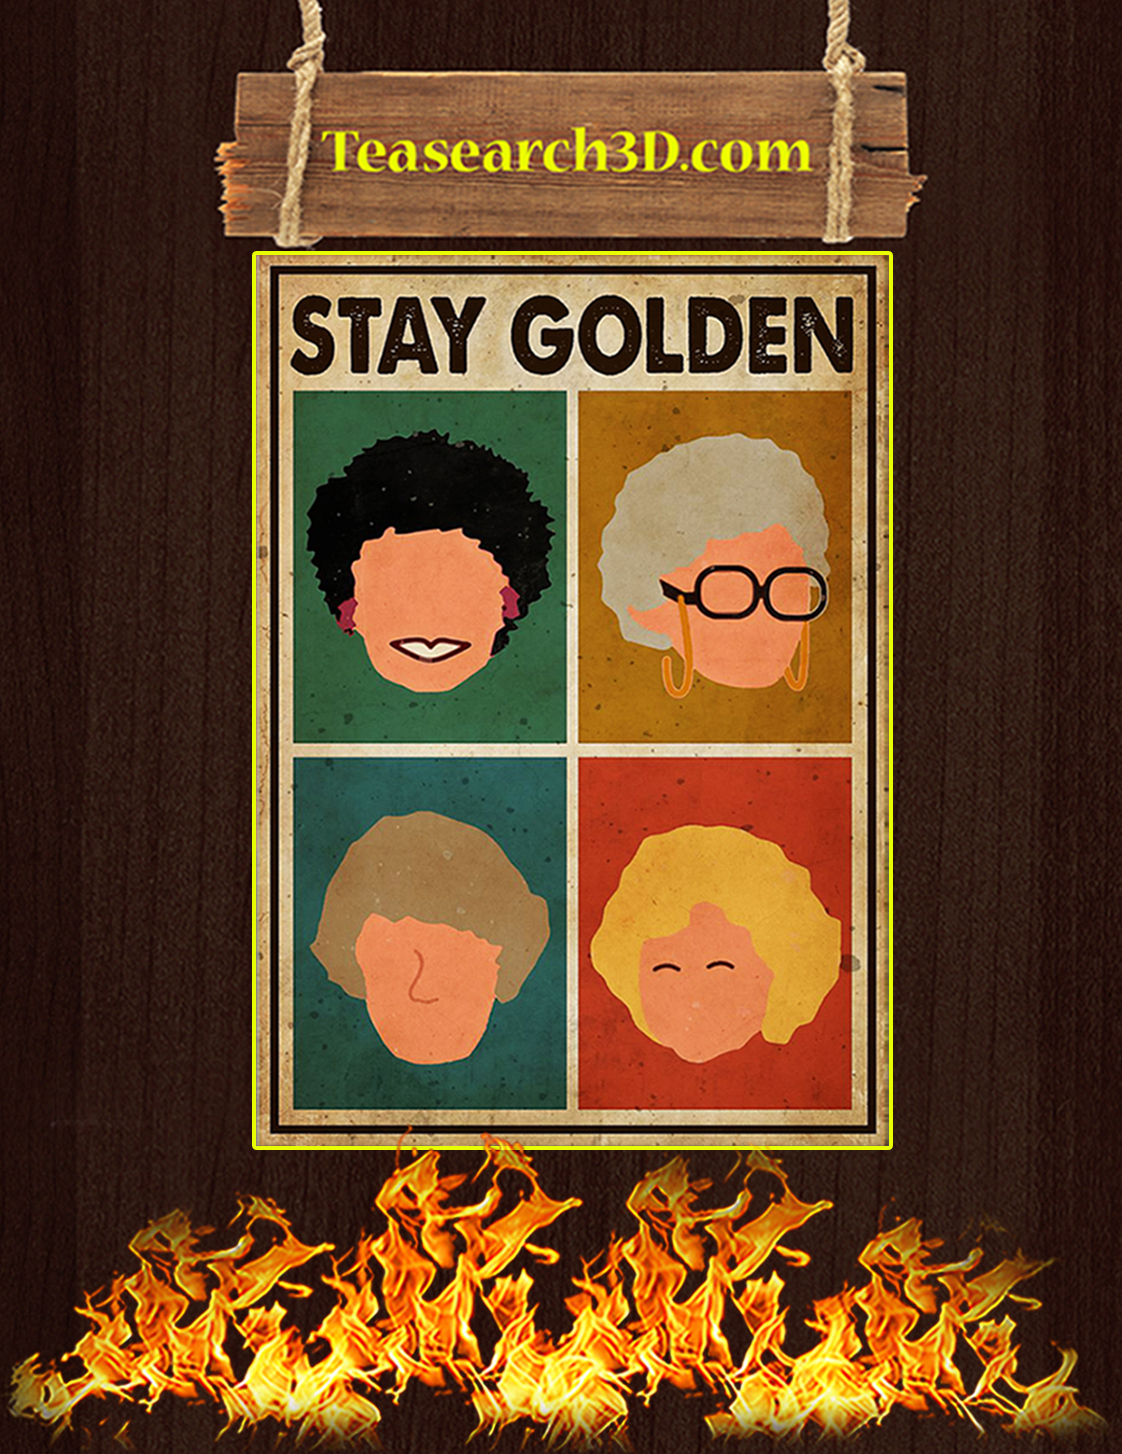 Stay golden poster A3